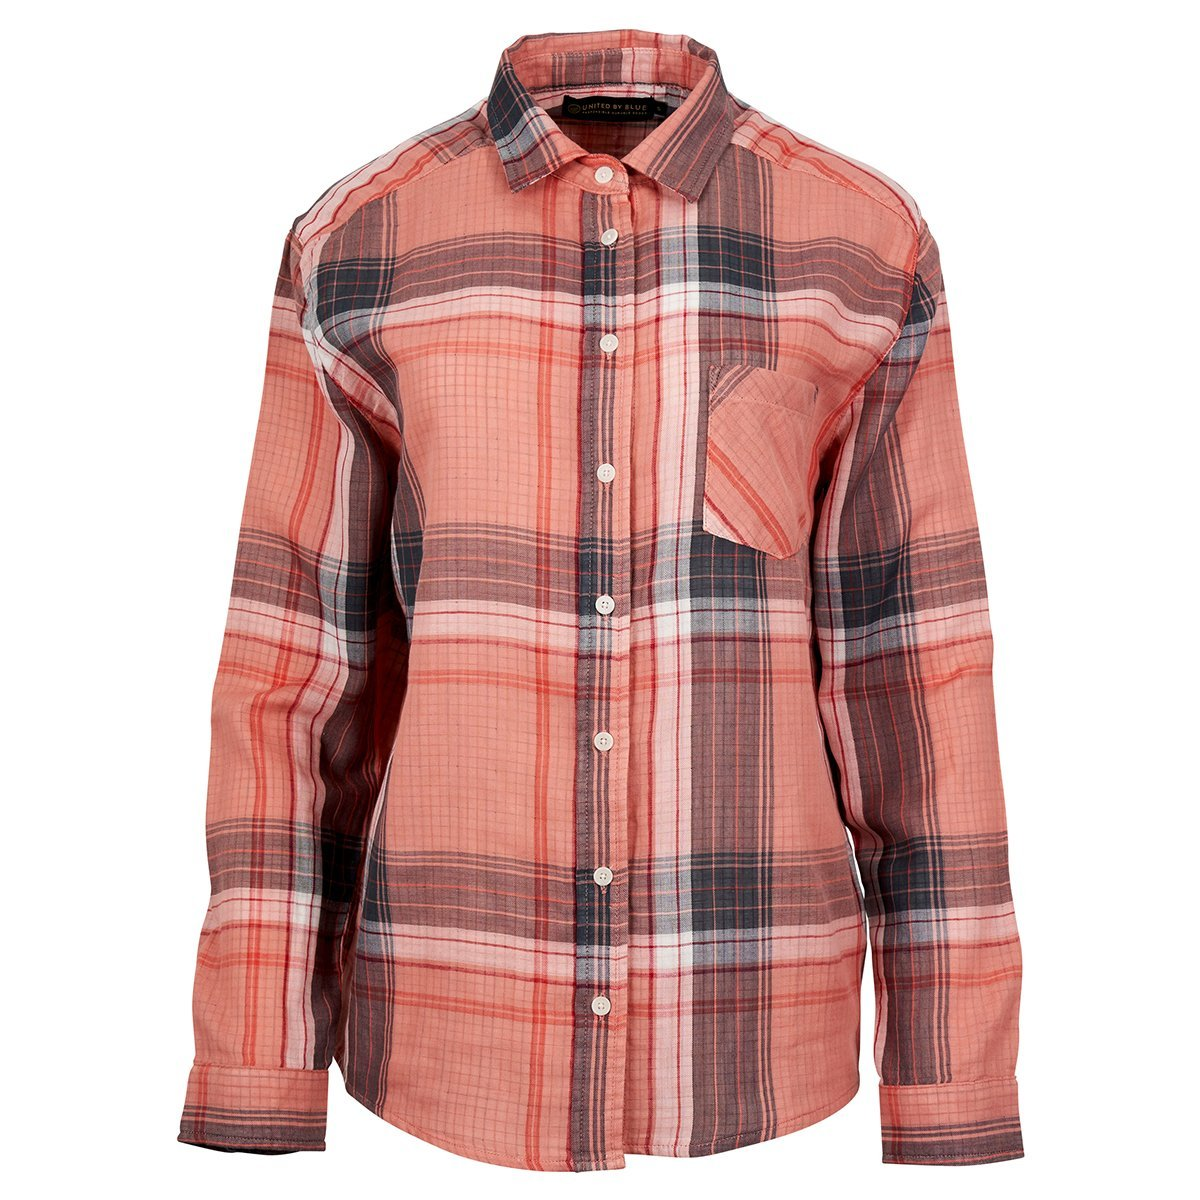 Women's Plaid Button Down